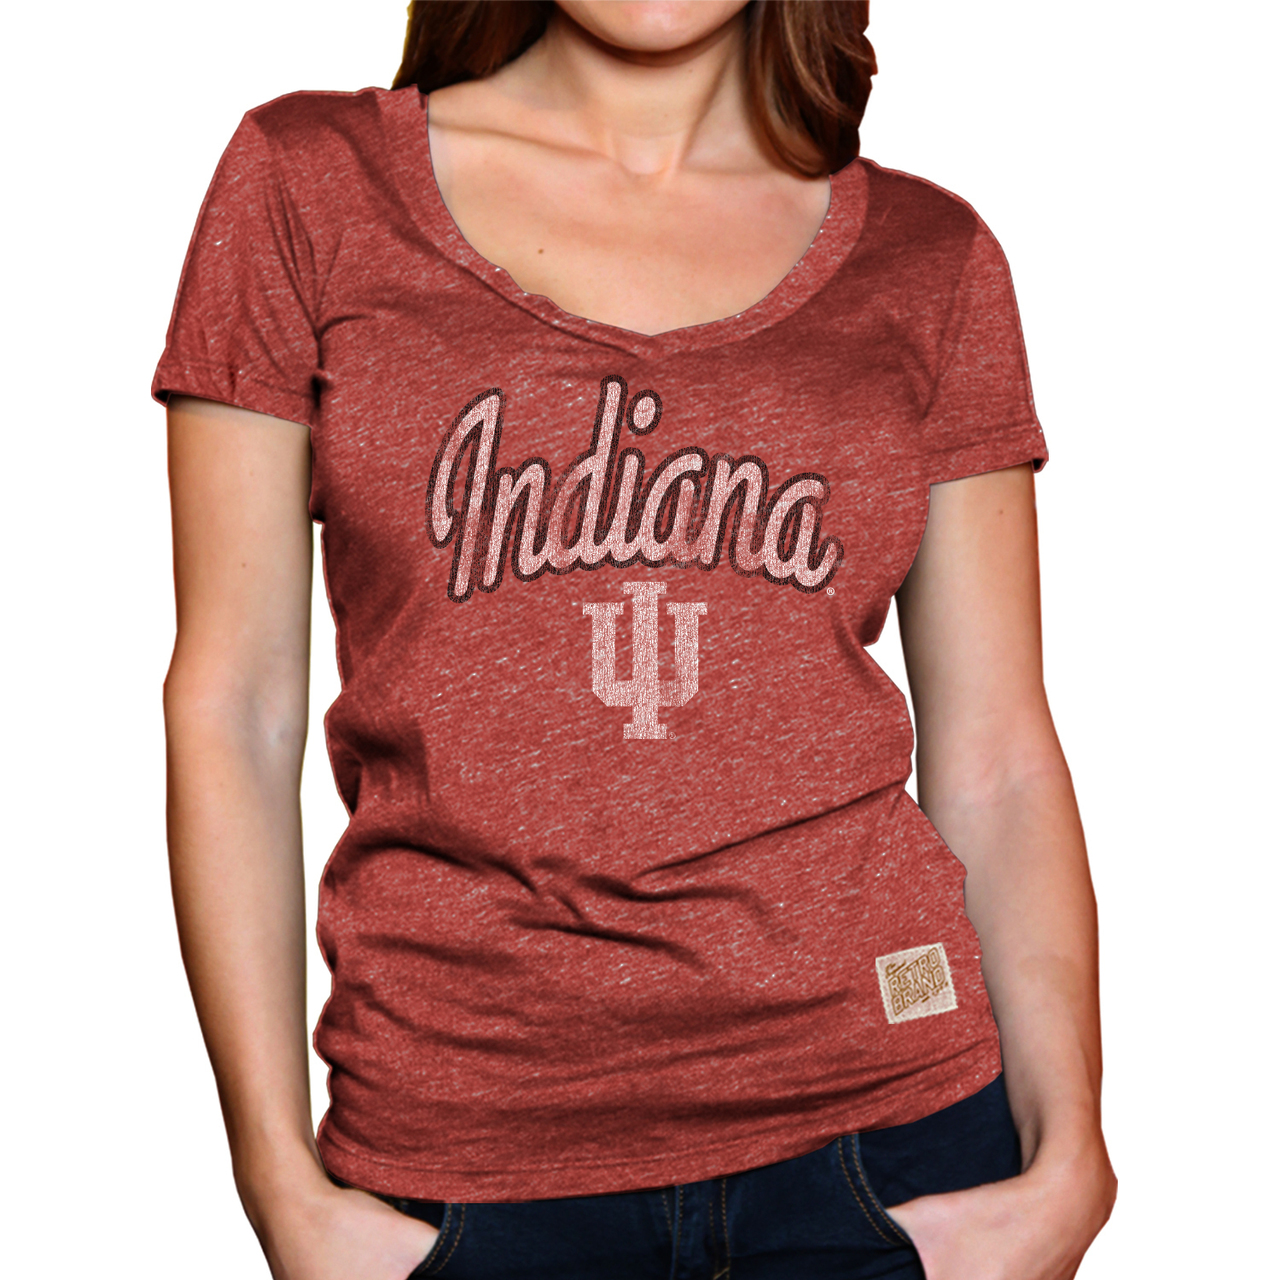 Indiana Hoosiers Womens Soft Triblend V-Neck T-Shirt - Red